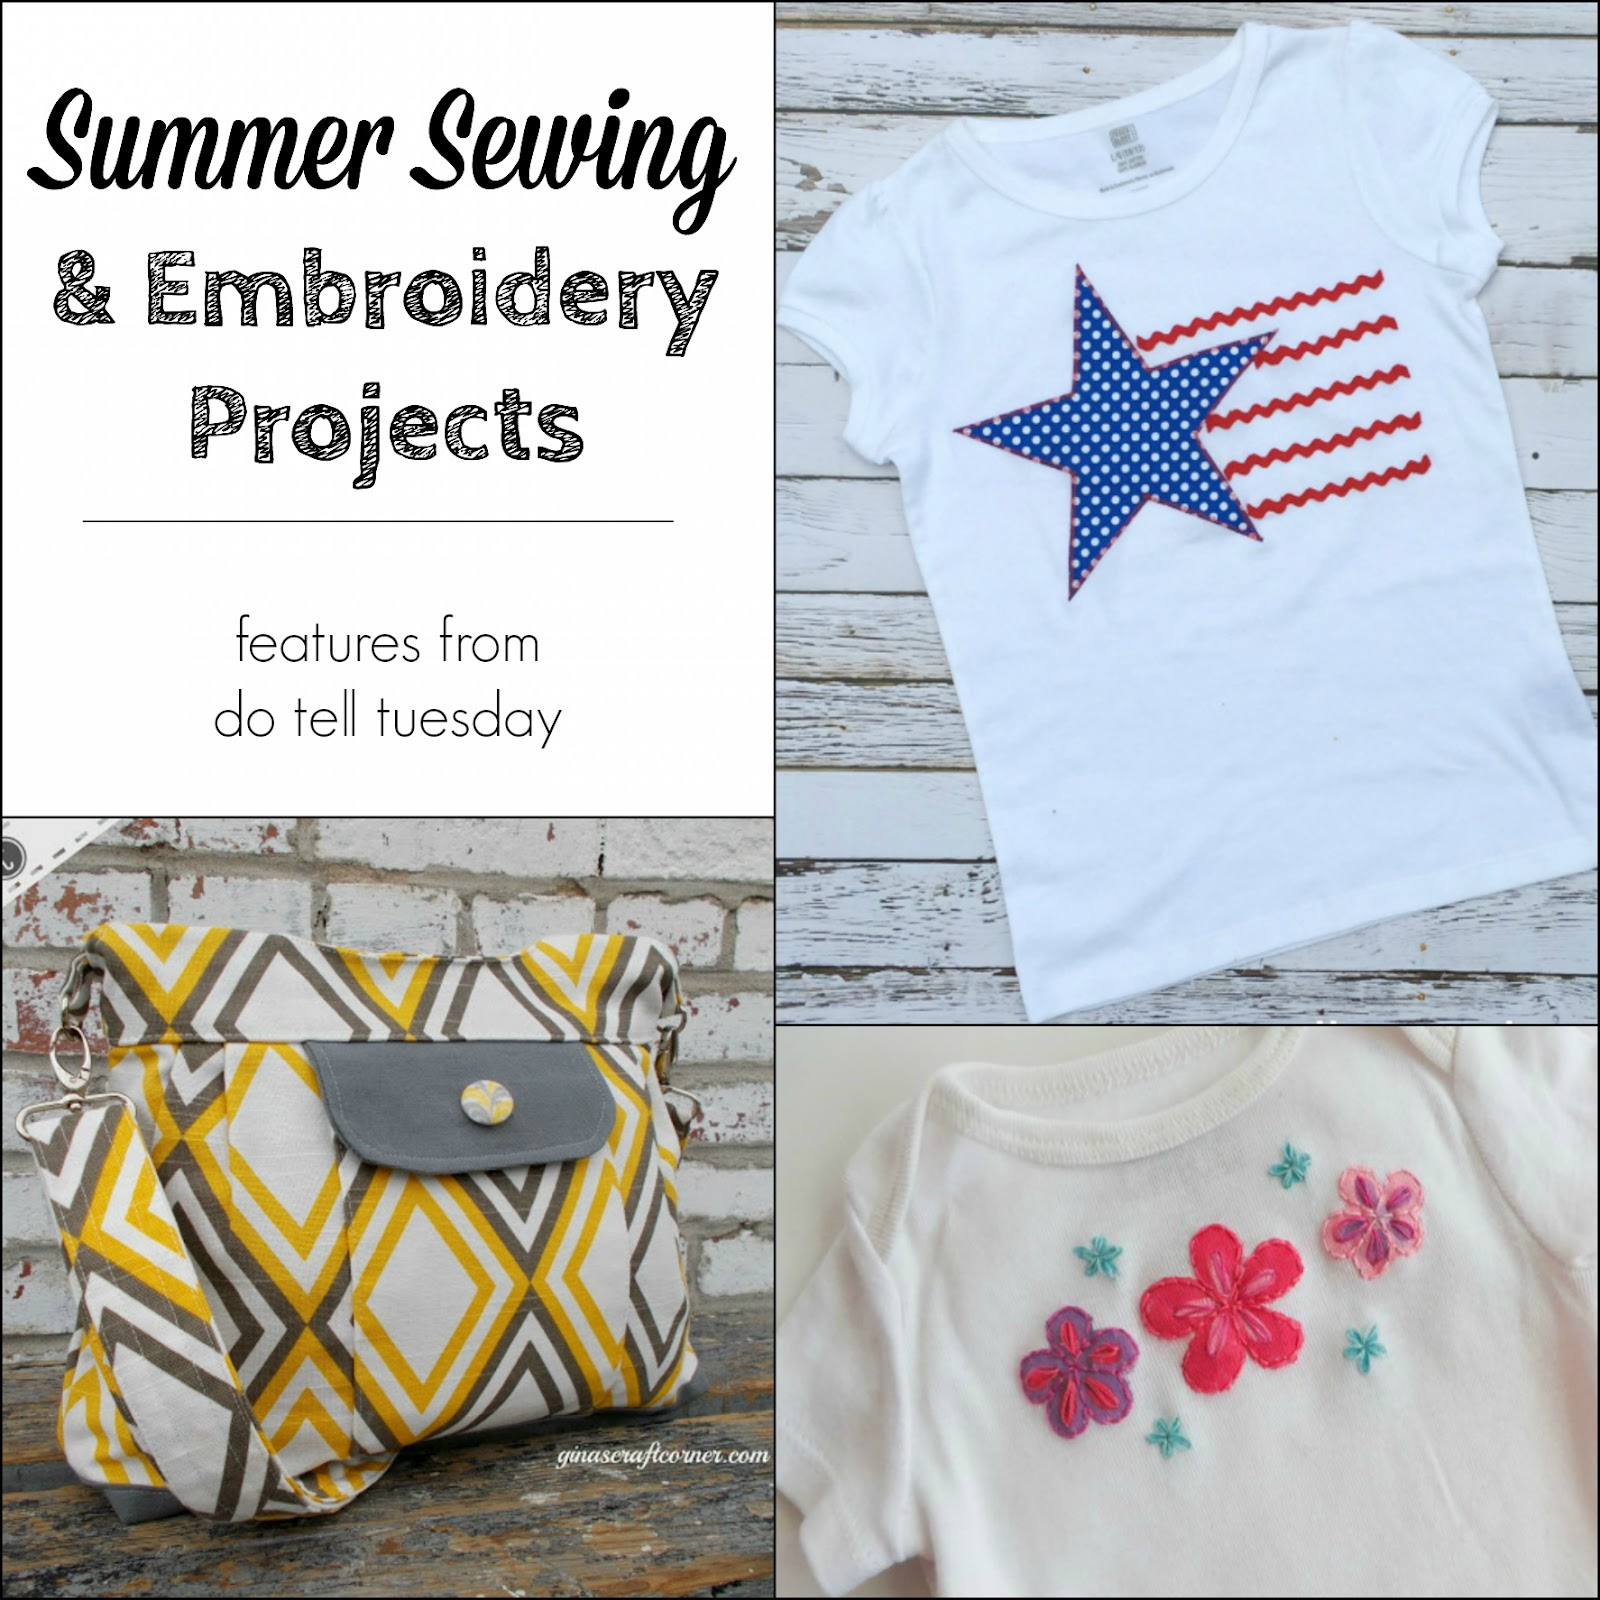 Summer Sewing & Embroidery Projects on Diane's Vintage Zest!